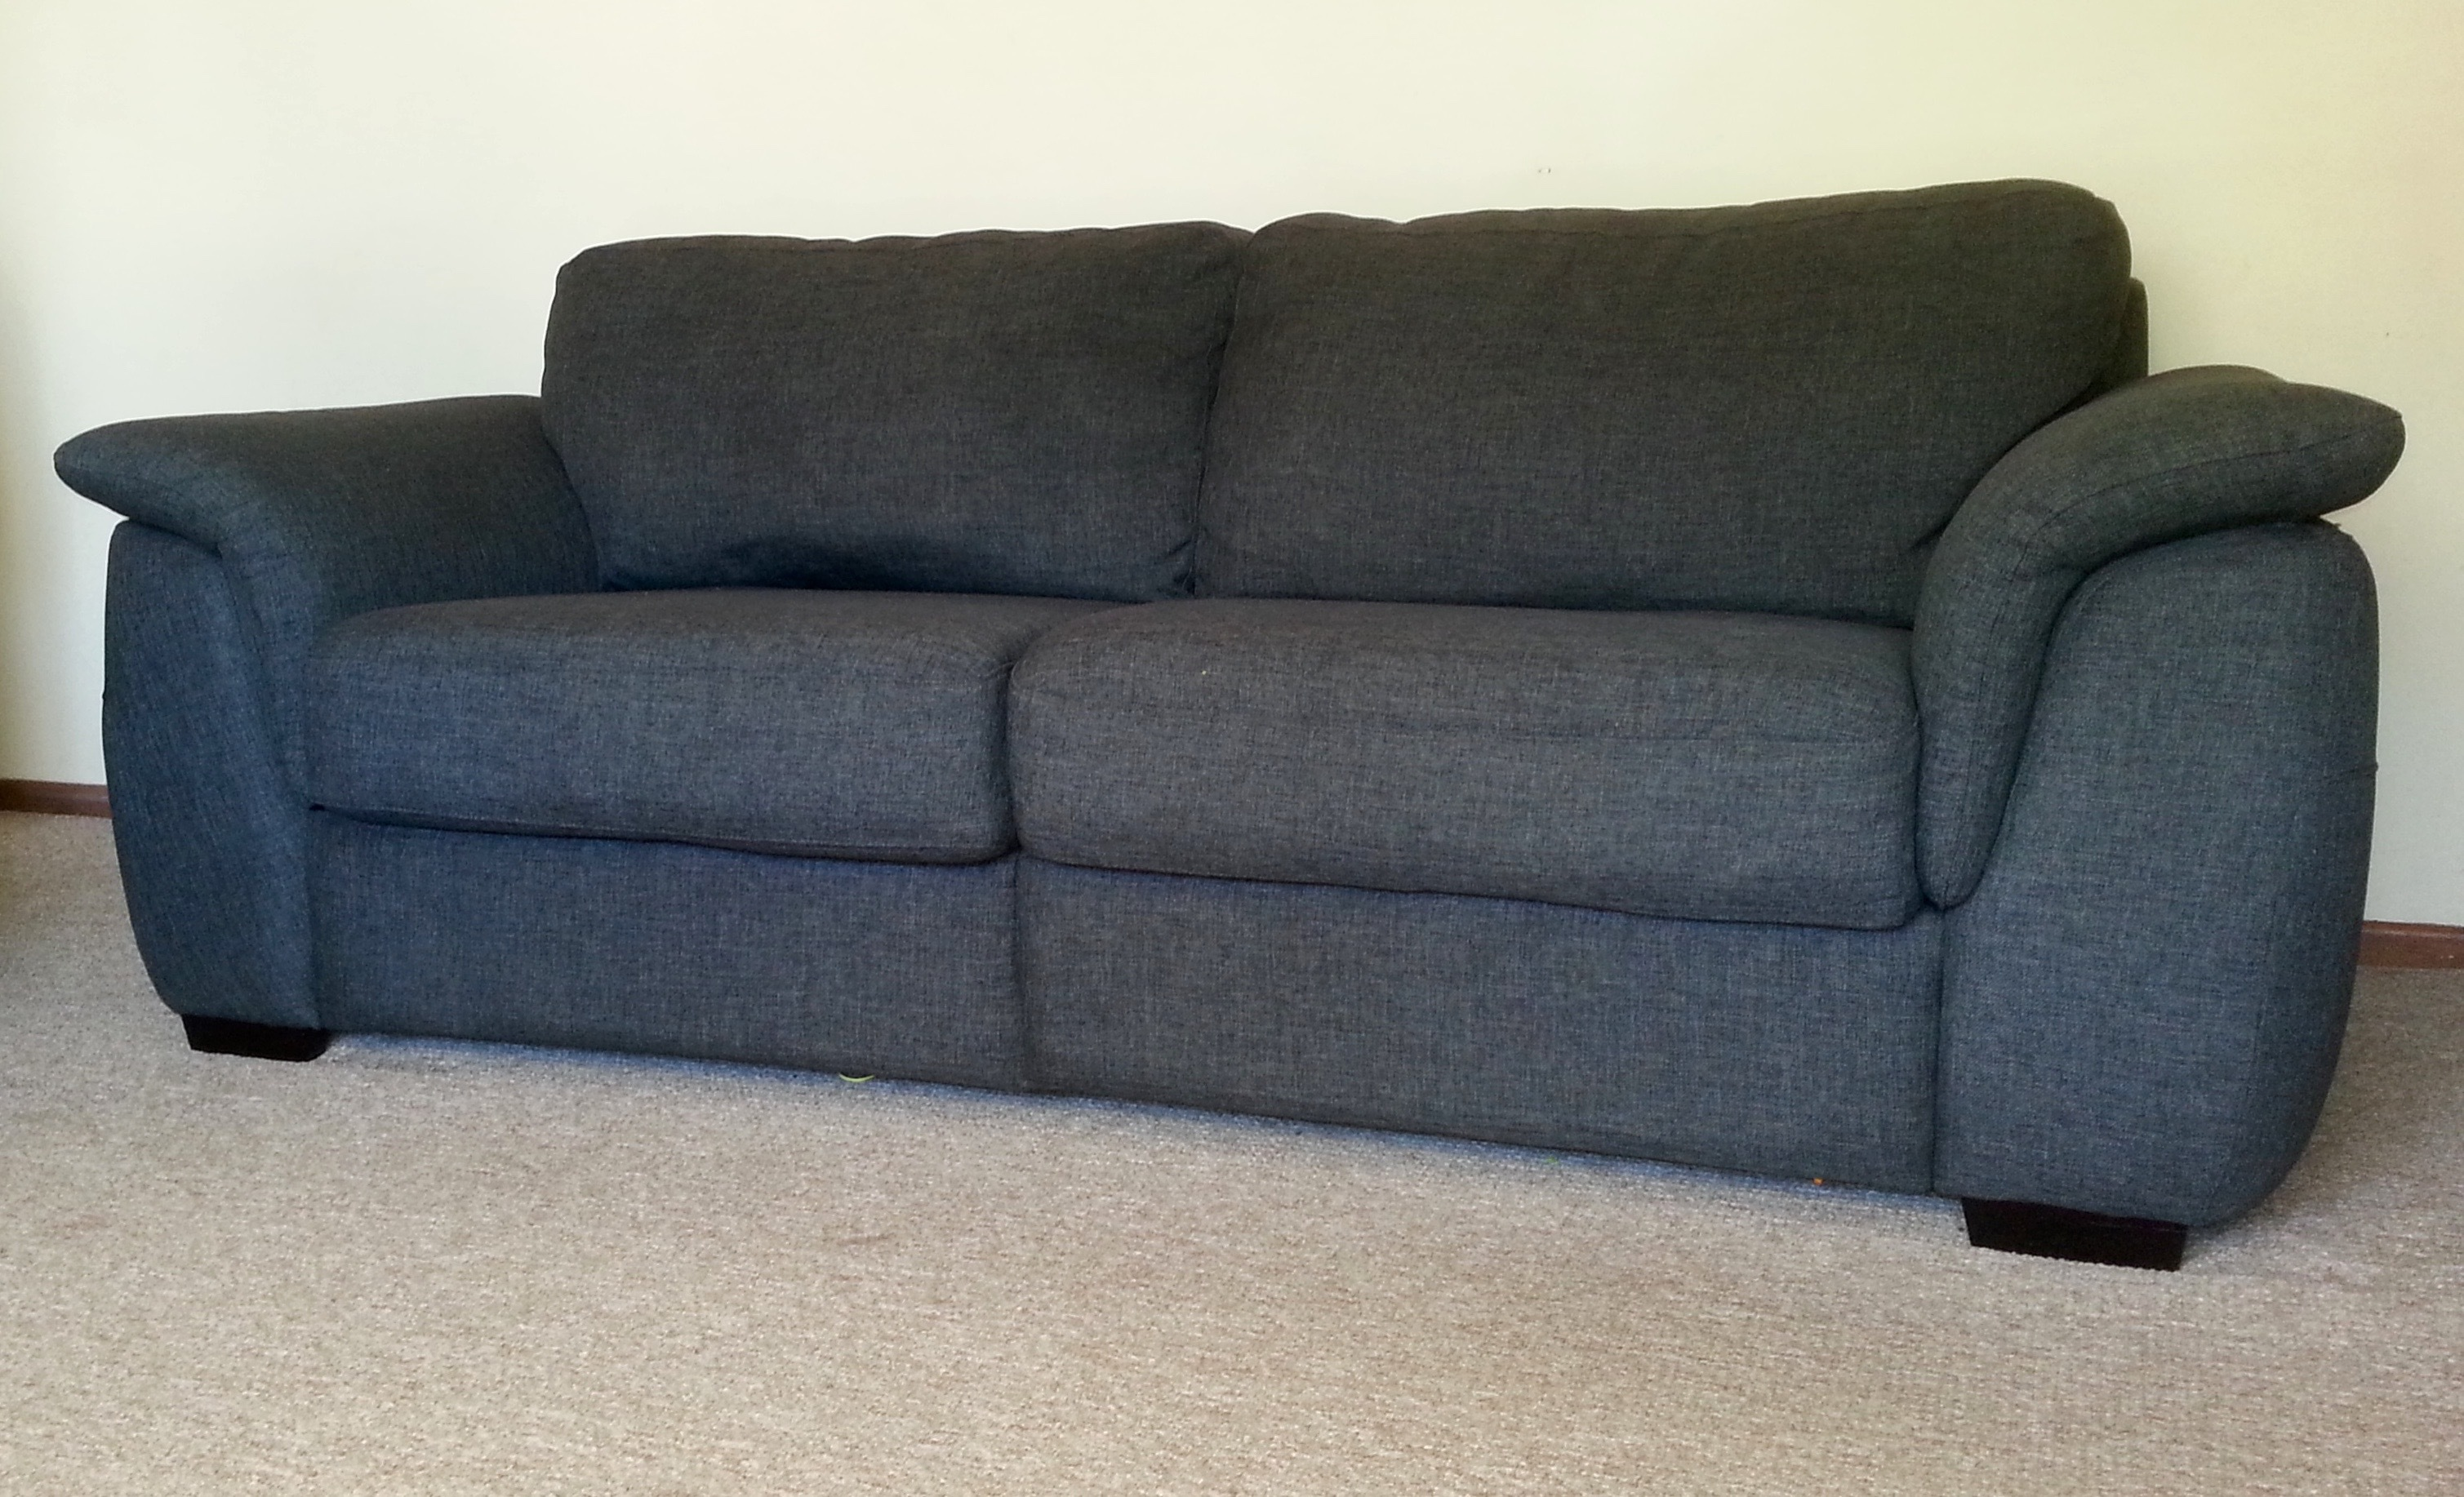 Donate My Couch 28 Images Donate My Couch 28 Images Where Can I Donate My Old Donate My